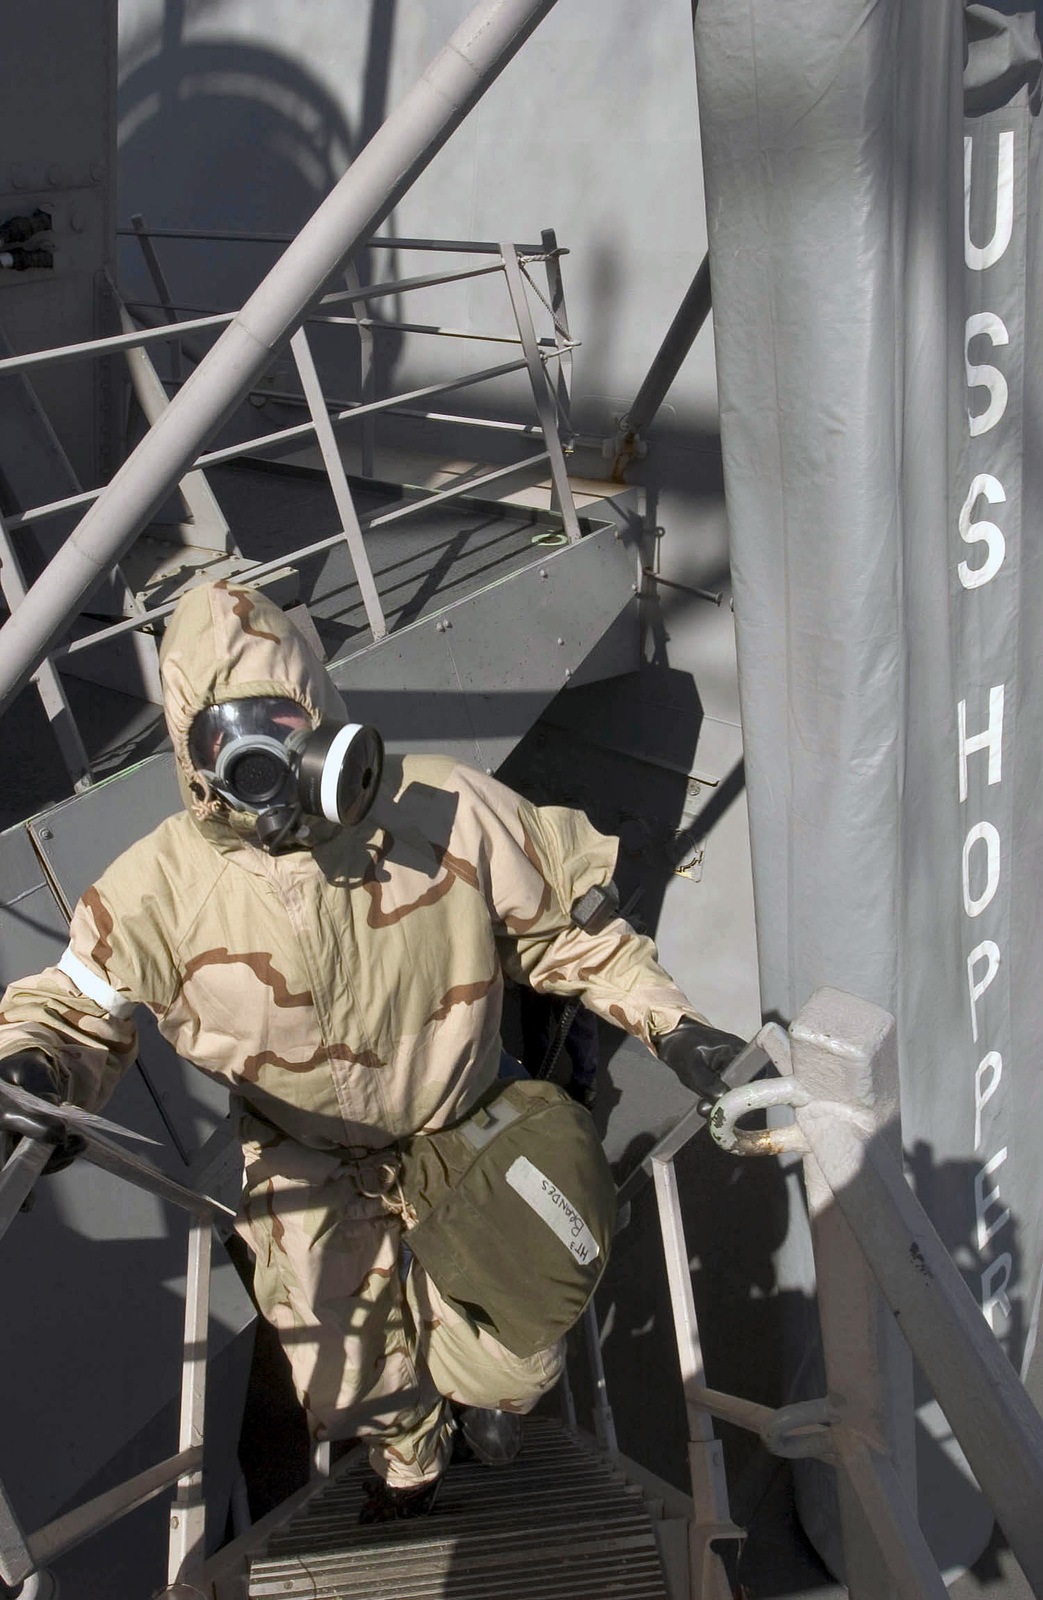 U.S. Navy Hull Technician Third Class Marc Brandes wears an Advanced Chemical Protective Garment, during a Chemical, Biological and Radiological drill aboard the Arleigh Burke Class Guided Missile Destroyer USS HOPPER (DDG 70) on Sep. 1, 2006. The HOPPER is on a scheduled deployment in support of Maritime Security Operations and the Global War on Terrorism.(U.S. Navy photo by Mass Communication SPECIALIST Second Class John L. Beeman) (Released)